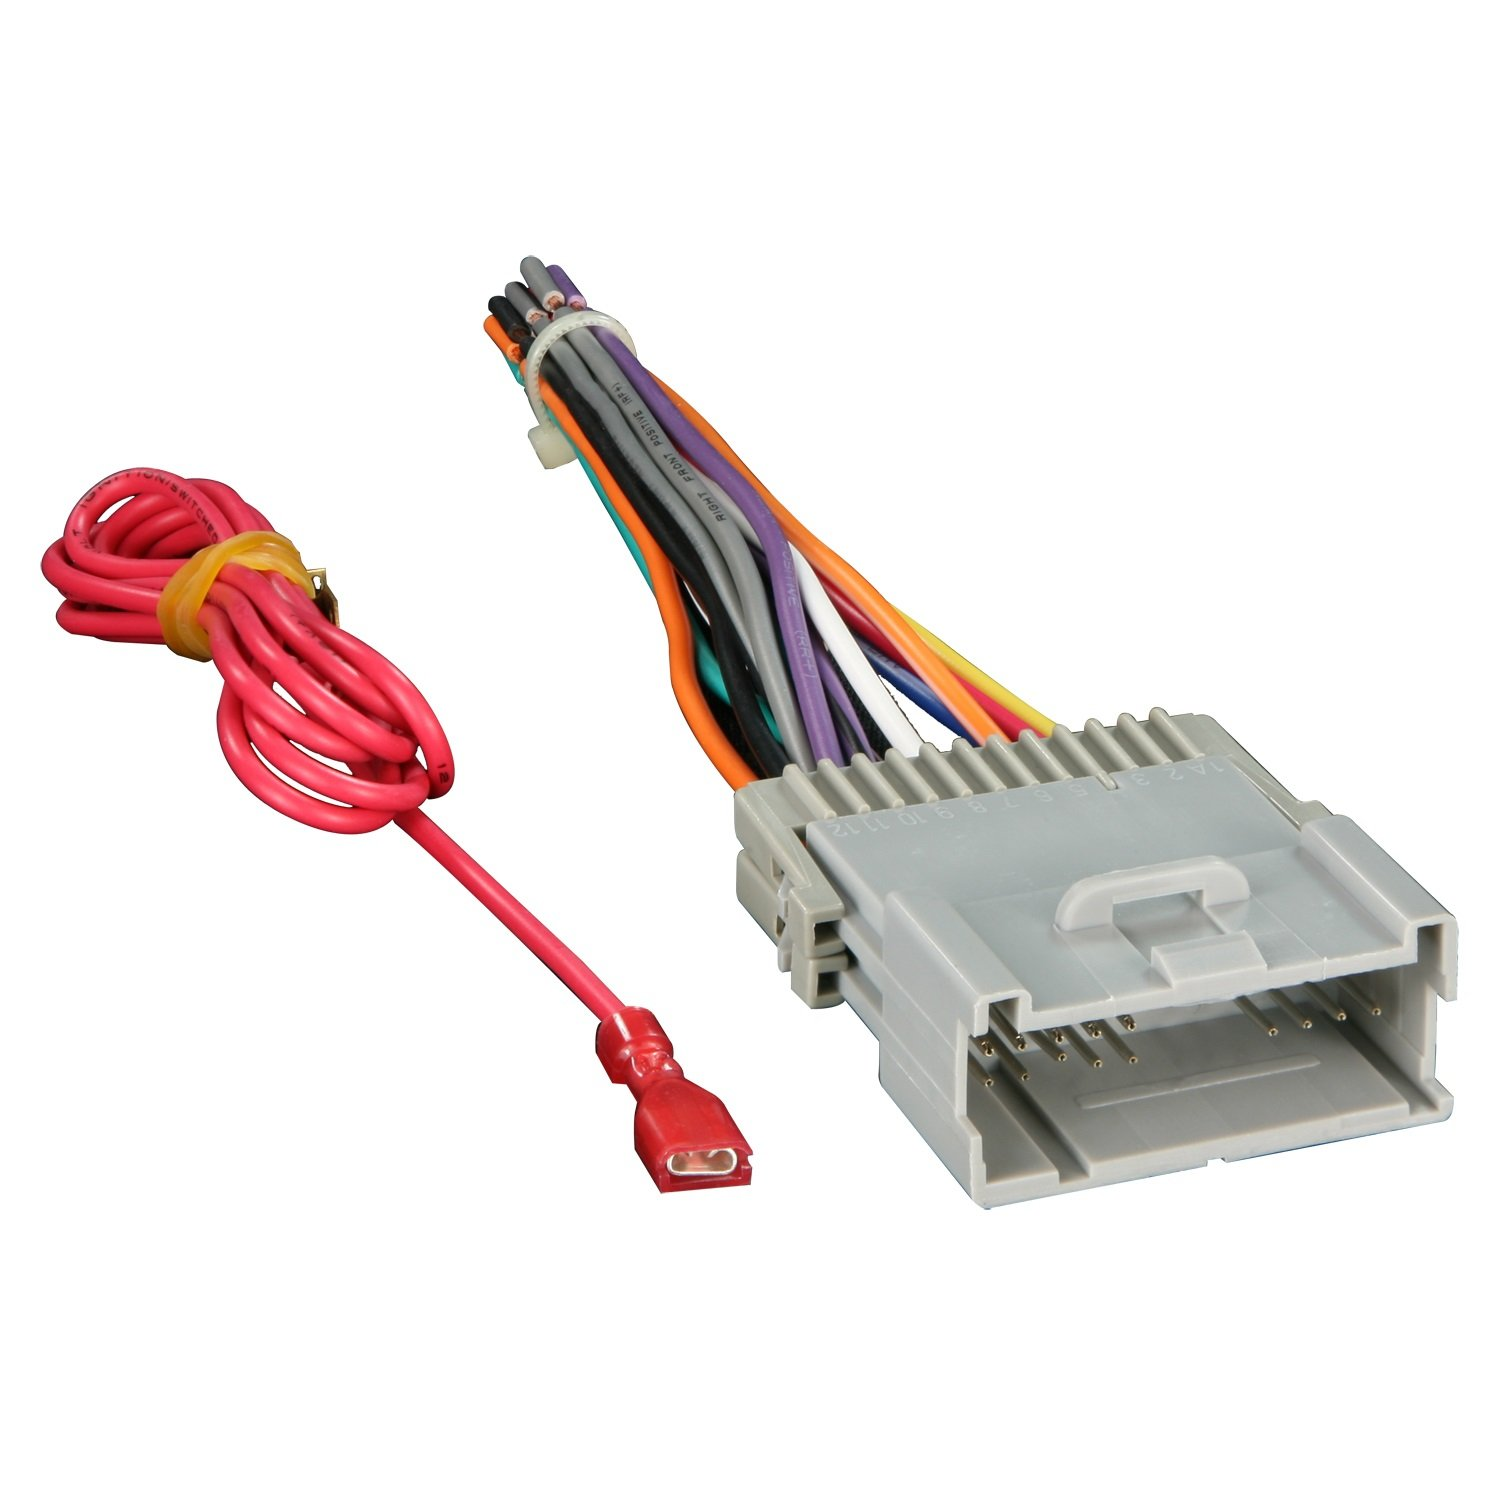 61eewxp9orL._SL1500_ amazon com metra 70 2003 radio wiring harness for gm 98 08  at alyssarenee.co